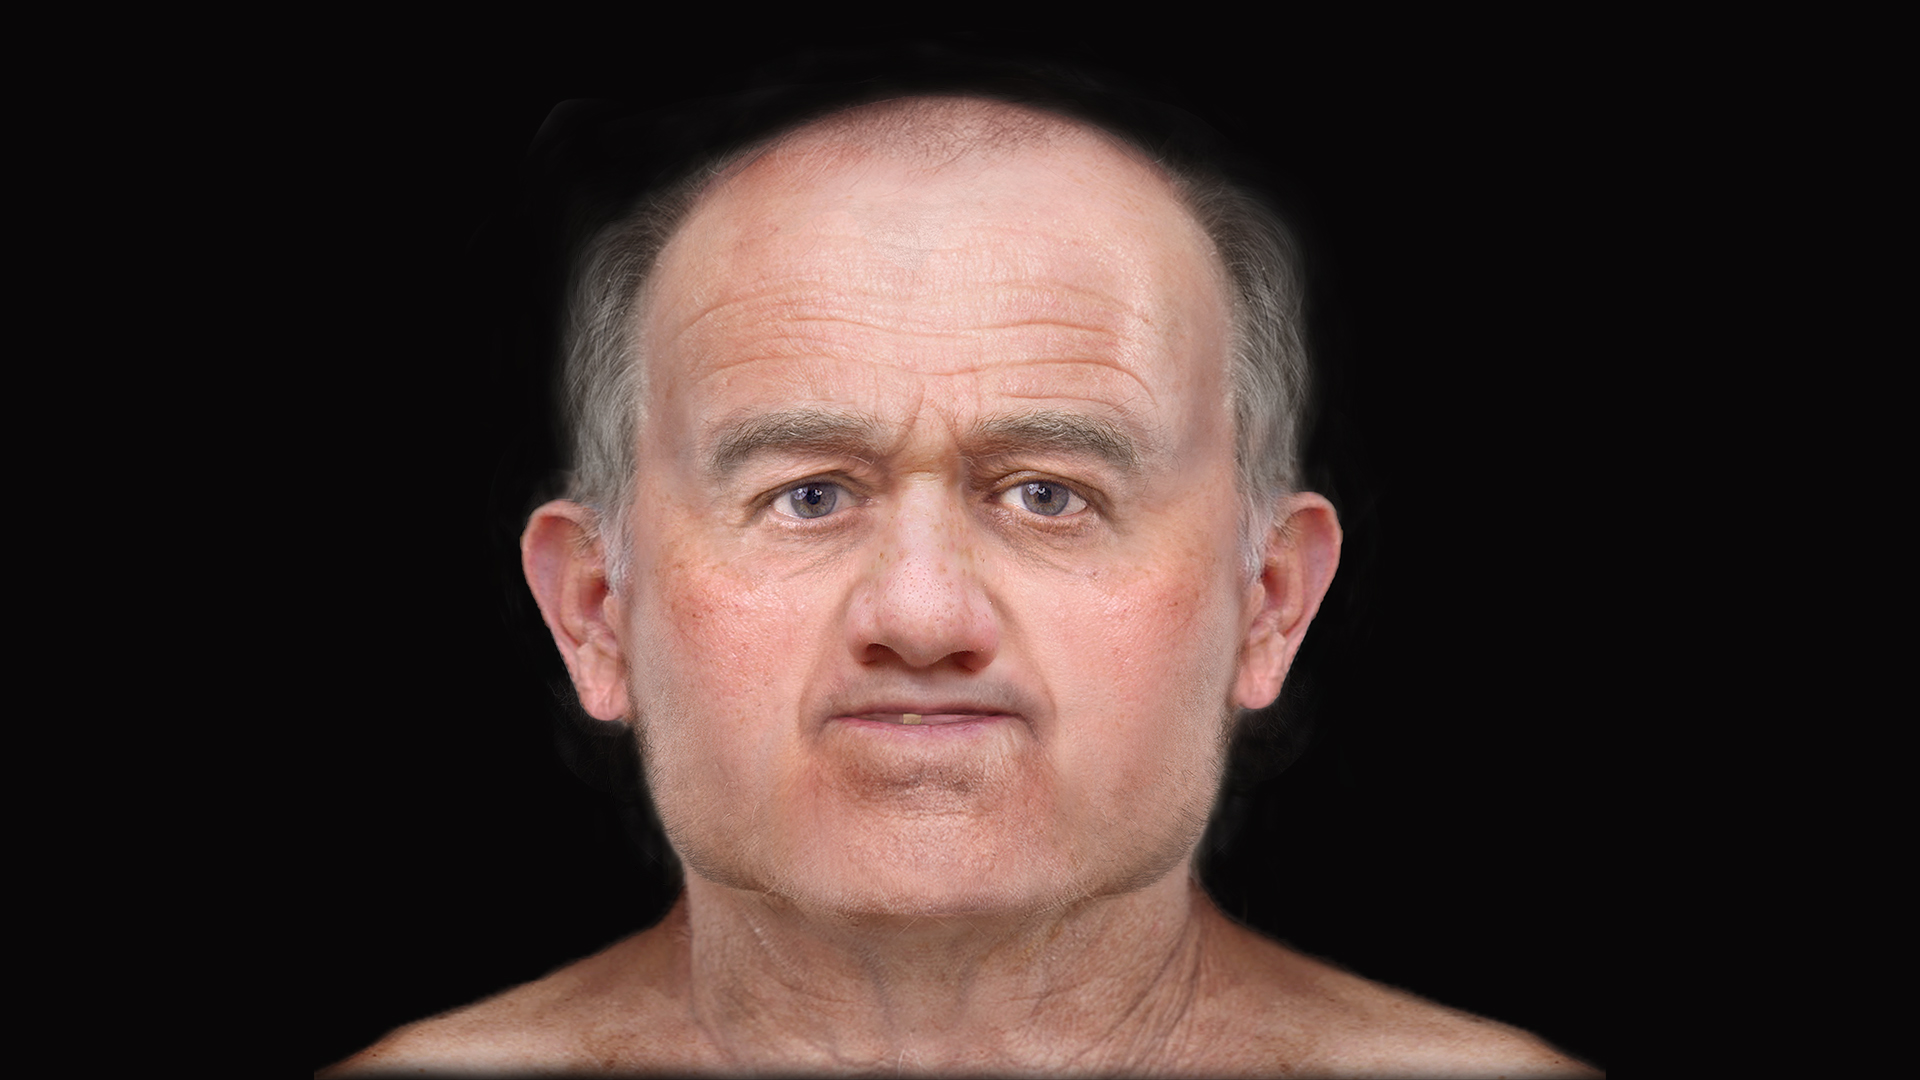 Medieval Scottish Man Who Died 600 Years Ago Was Short And Balding